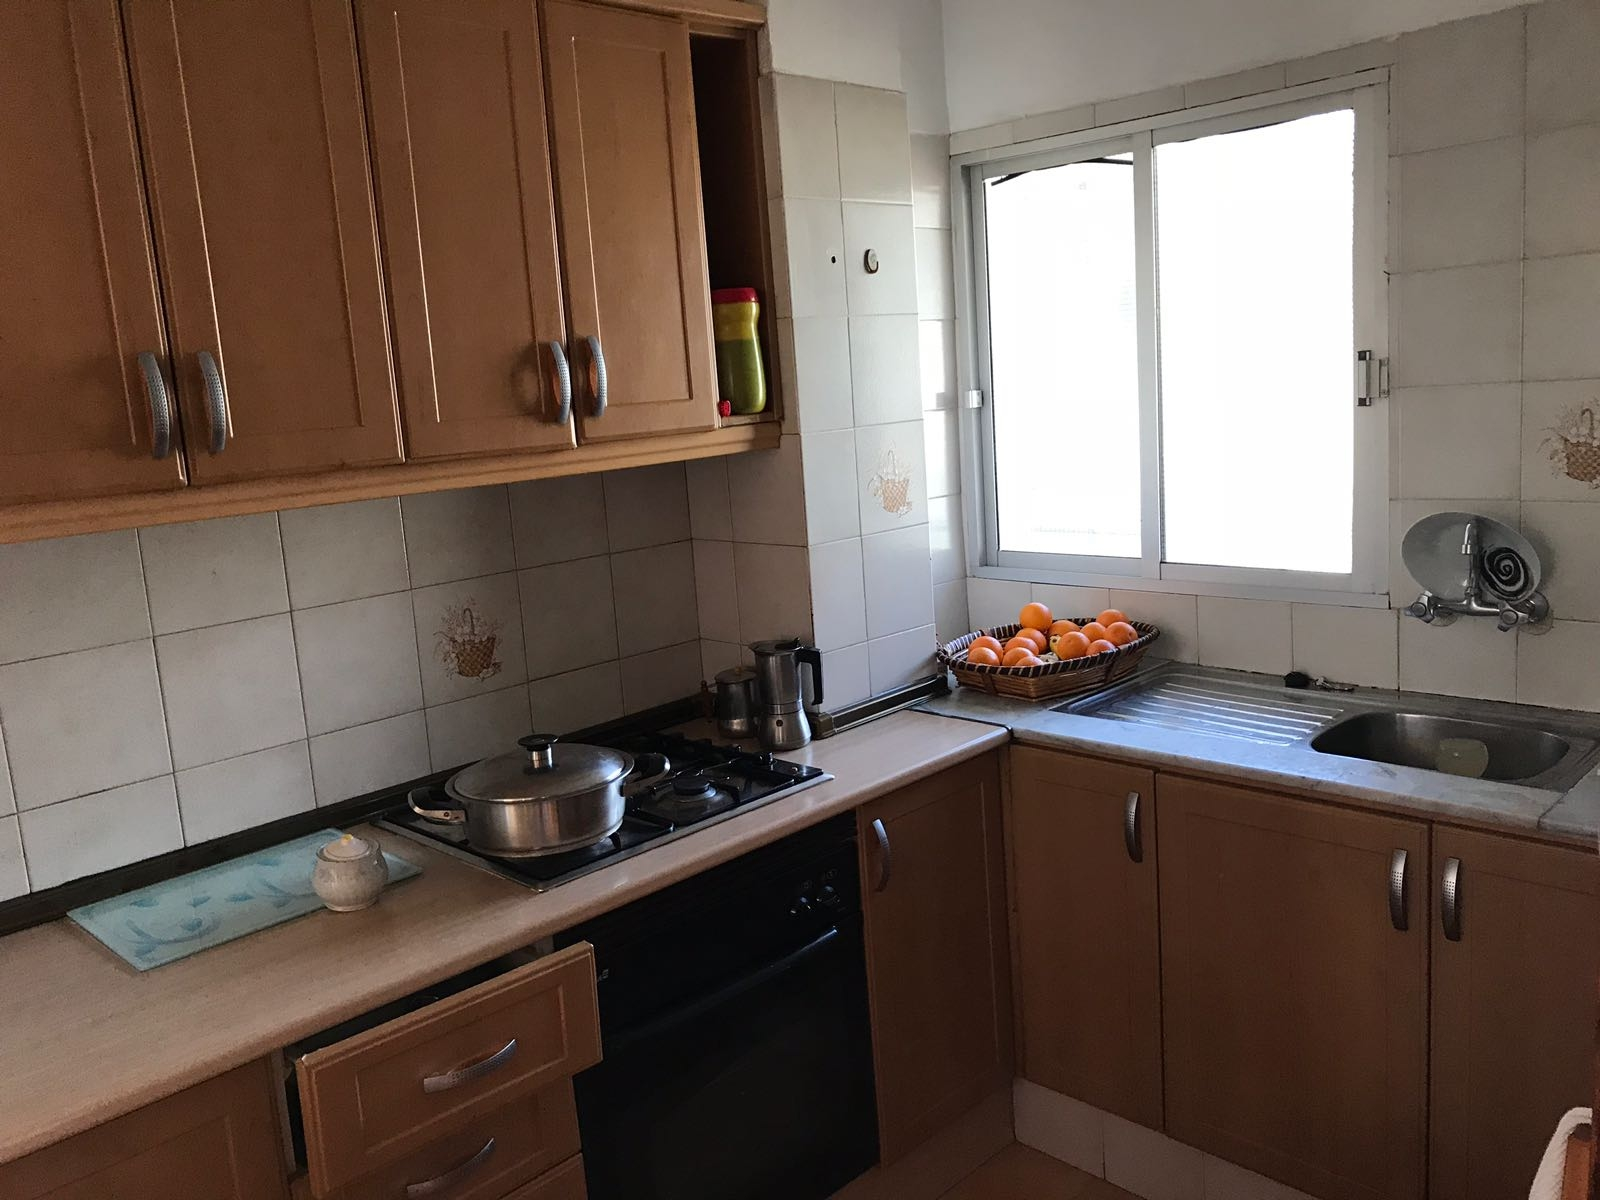 Properties for Sale in Tenerife, Canary Islands, Spain | SylkWayStar Real Estate. 1 Bedroom apartment Los Agaves. Image-22278